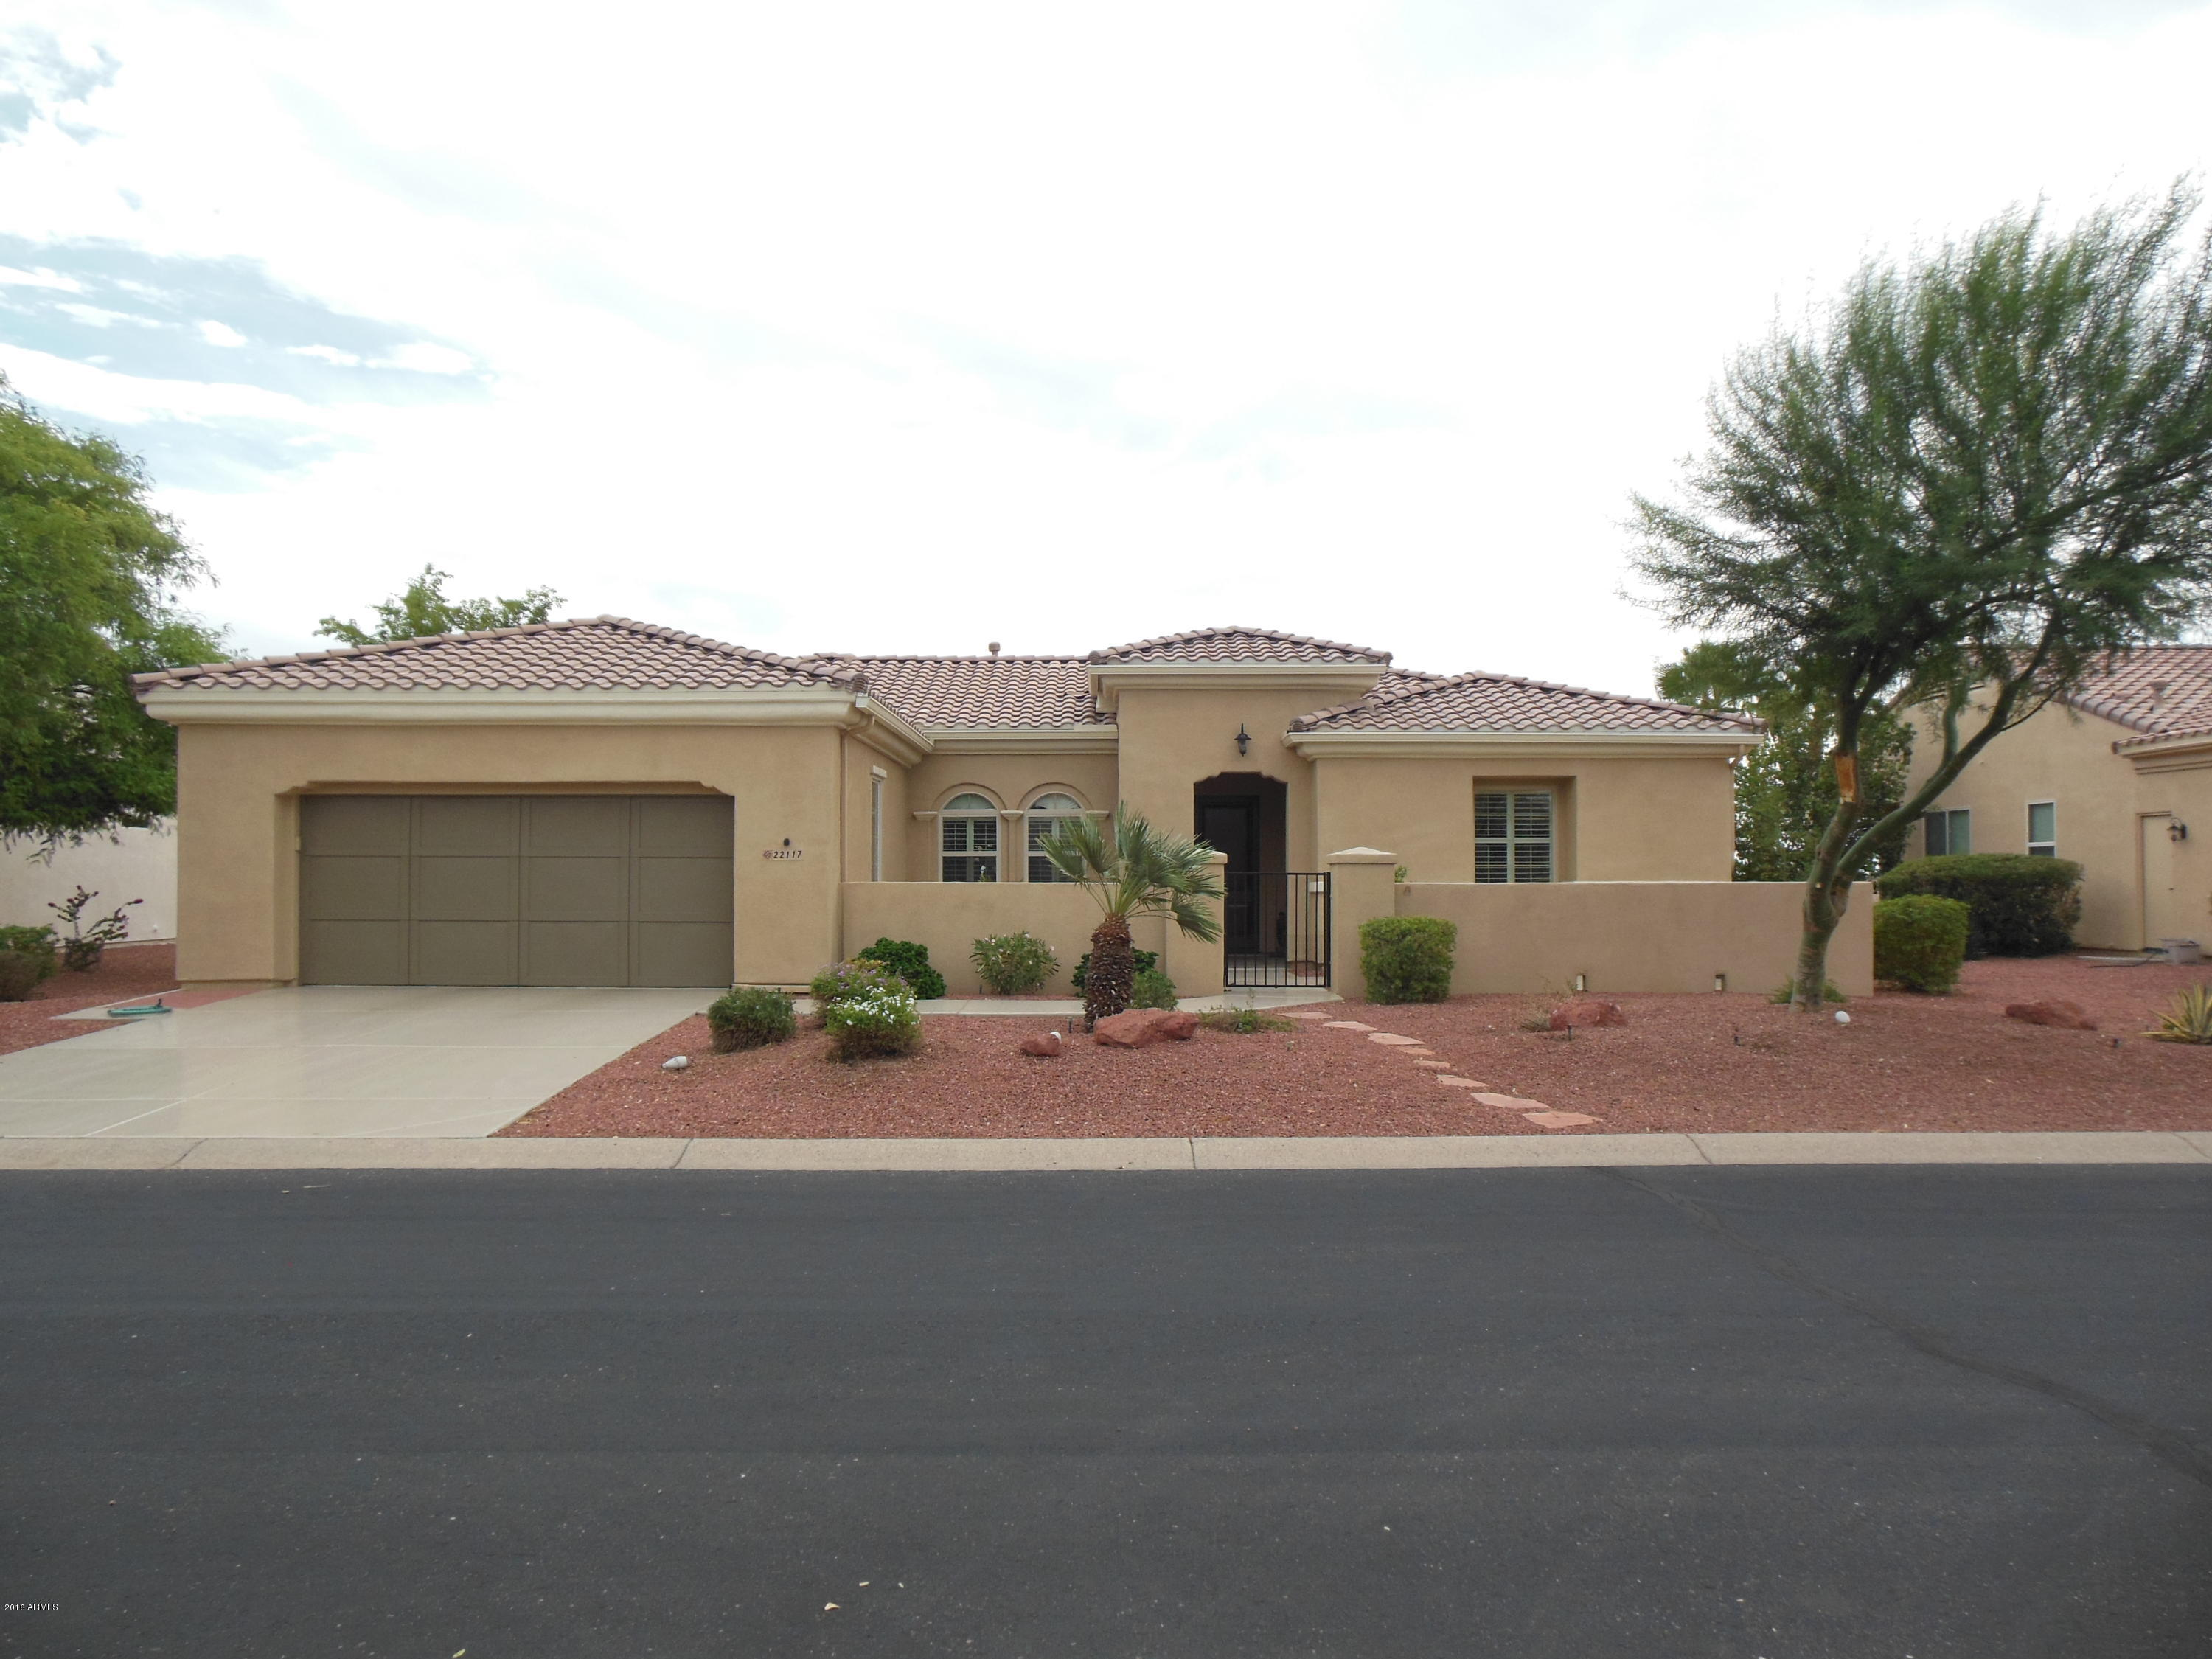 22117 N GIOVOTA DRIVE, SUN CITY WEST, AZ 85375